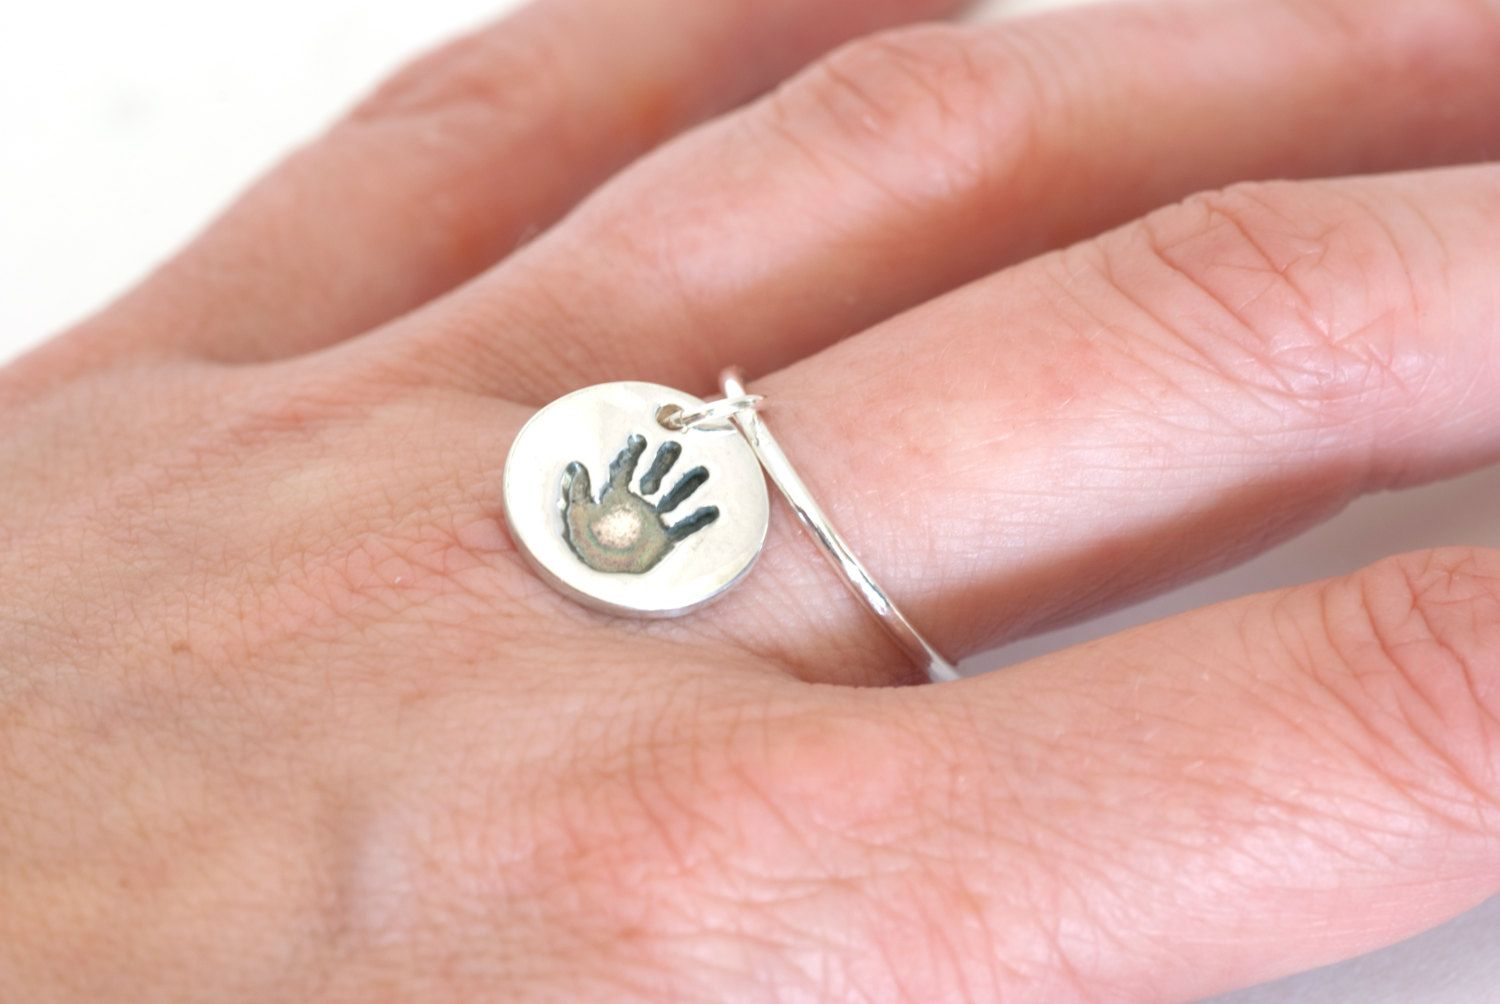 by handmade ring child iambrave footprint rings shop baby signature brent jewelry jess fingerprint silver custom sterling